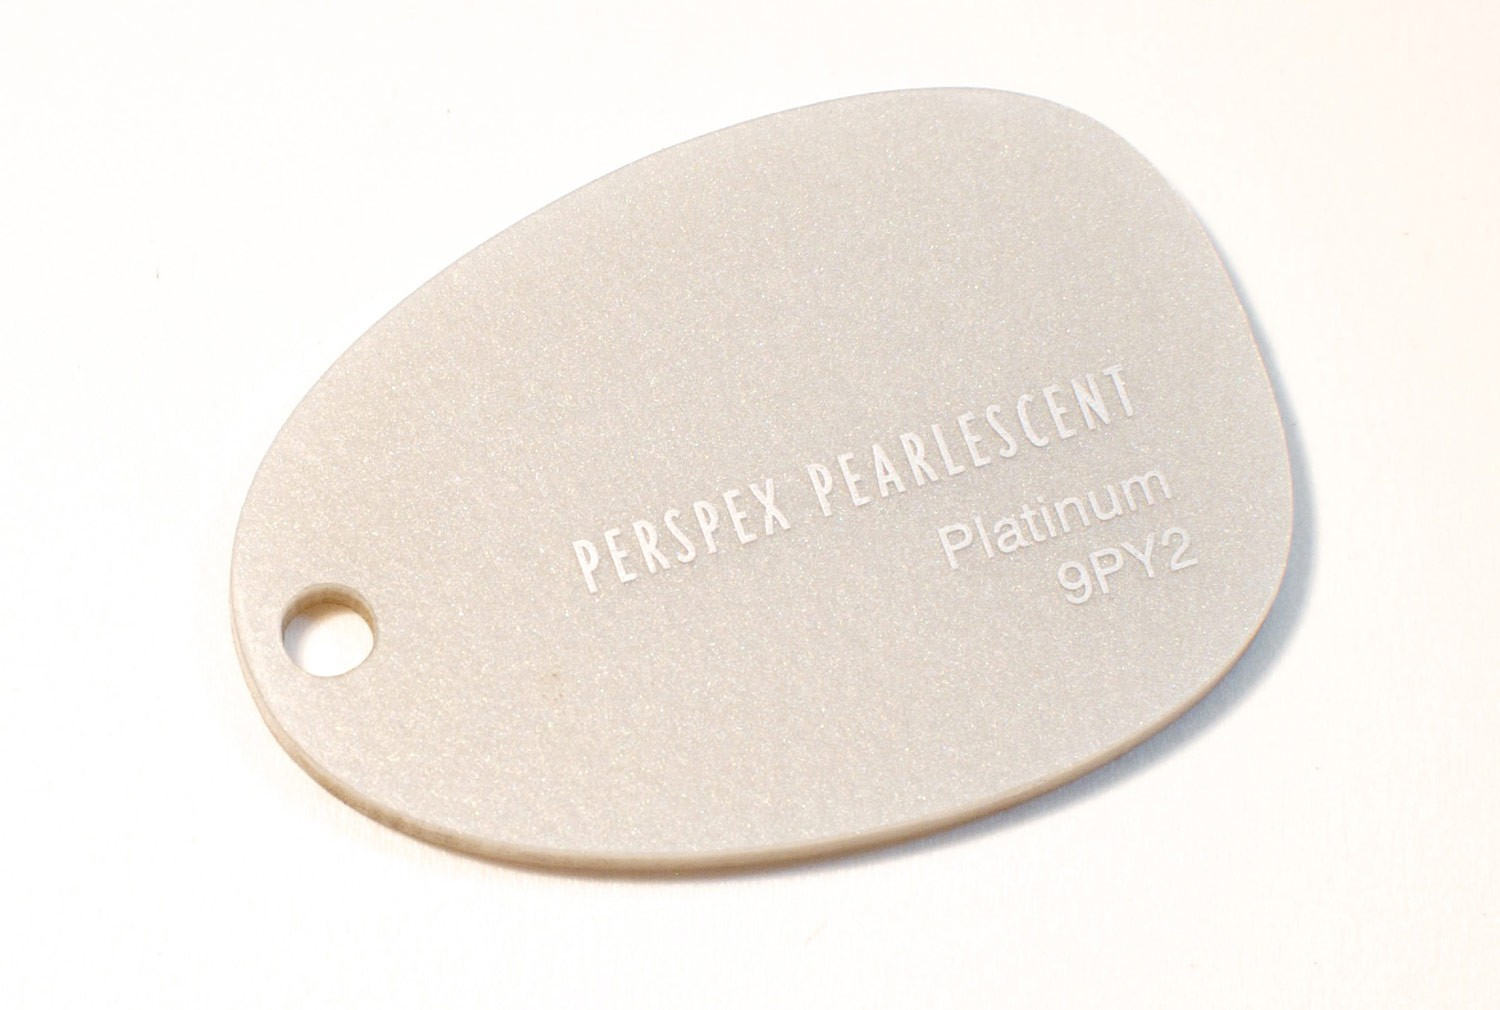 3mm Platinum Pearlescent Perspex Sheet